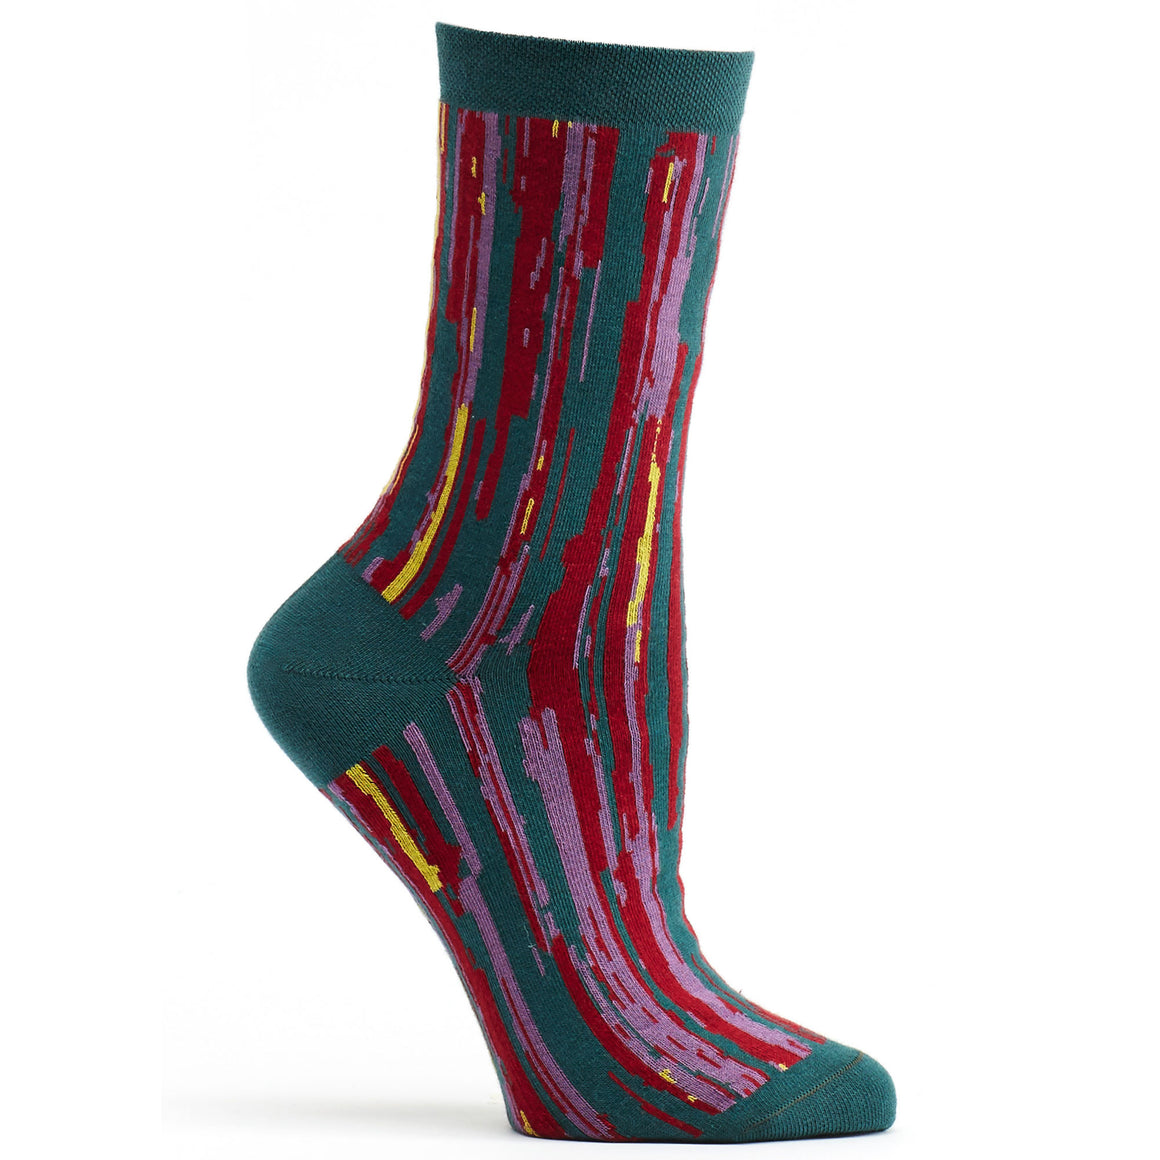 Stripe Overlap Sock in Tuquoise size 9-11 womens novelty from ozone socks